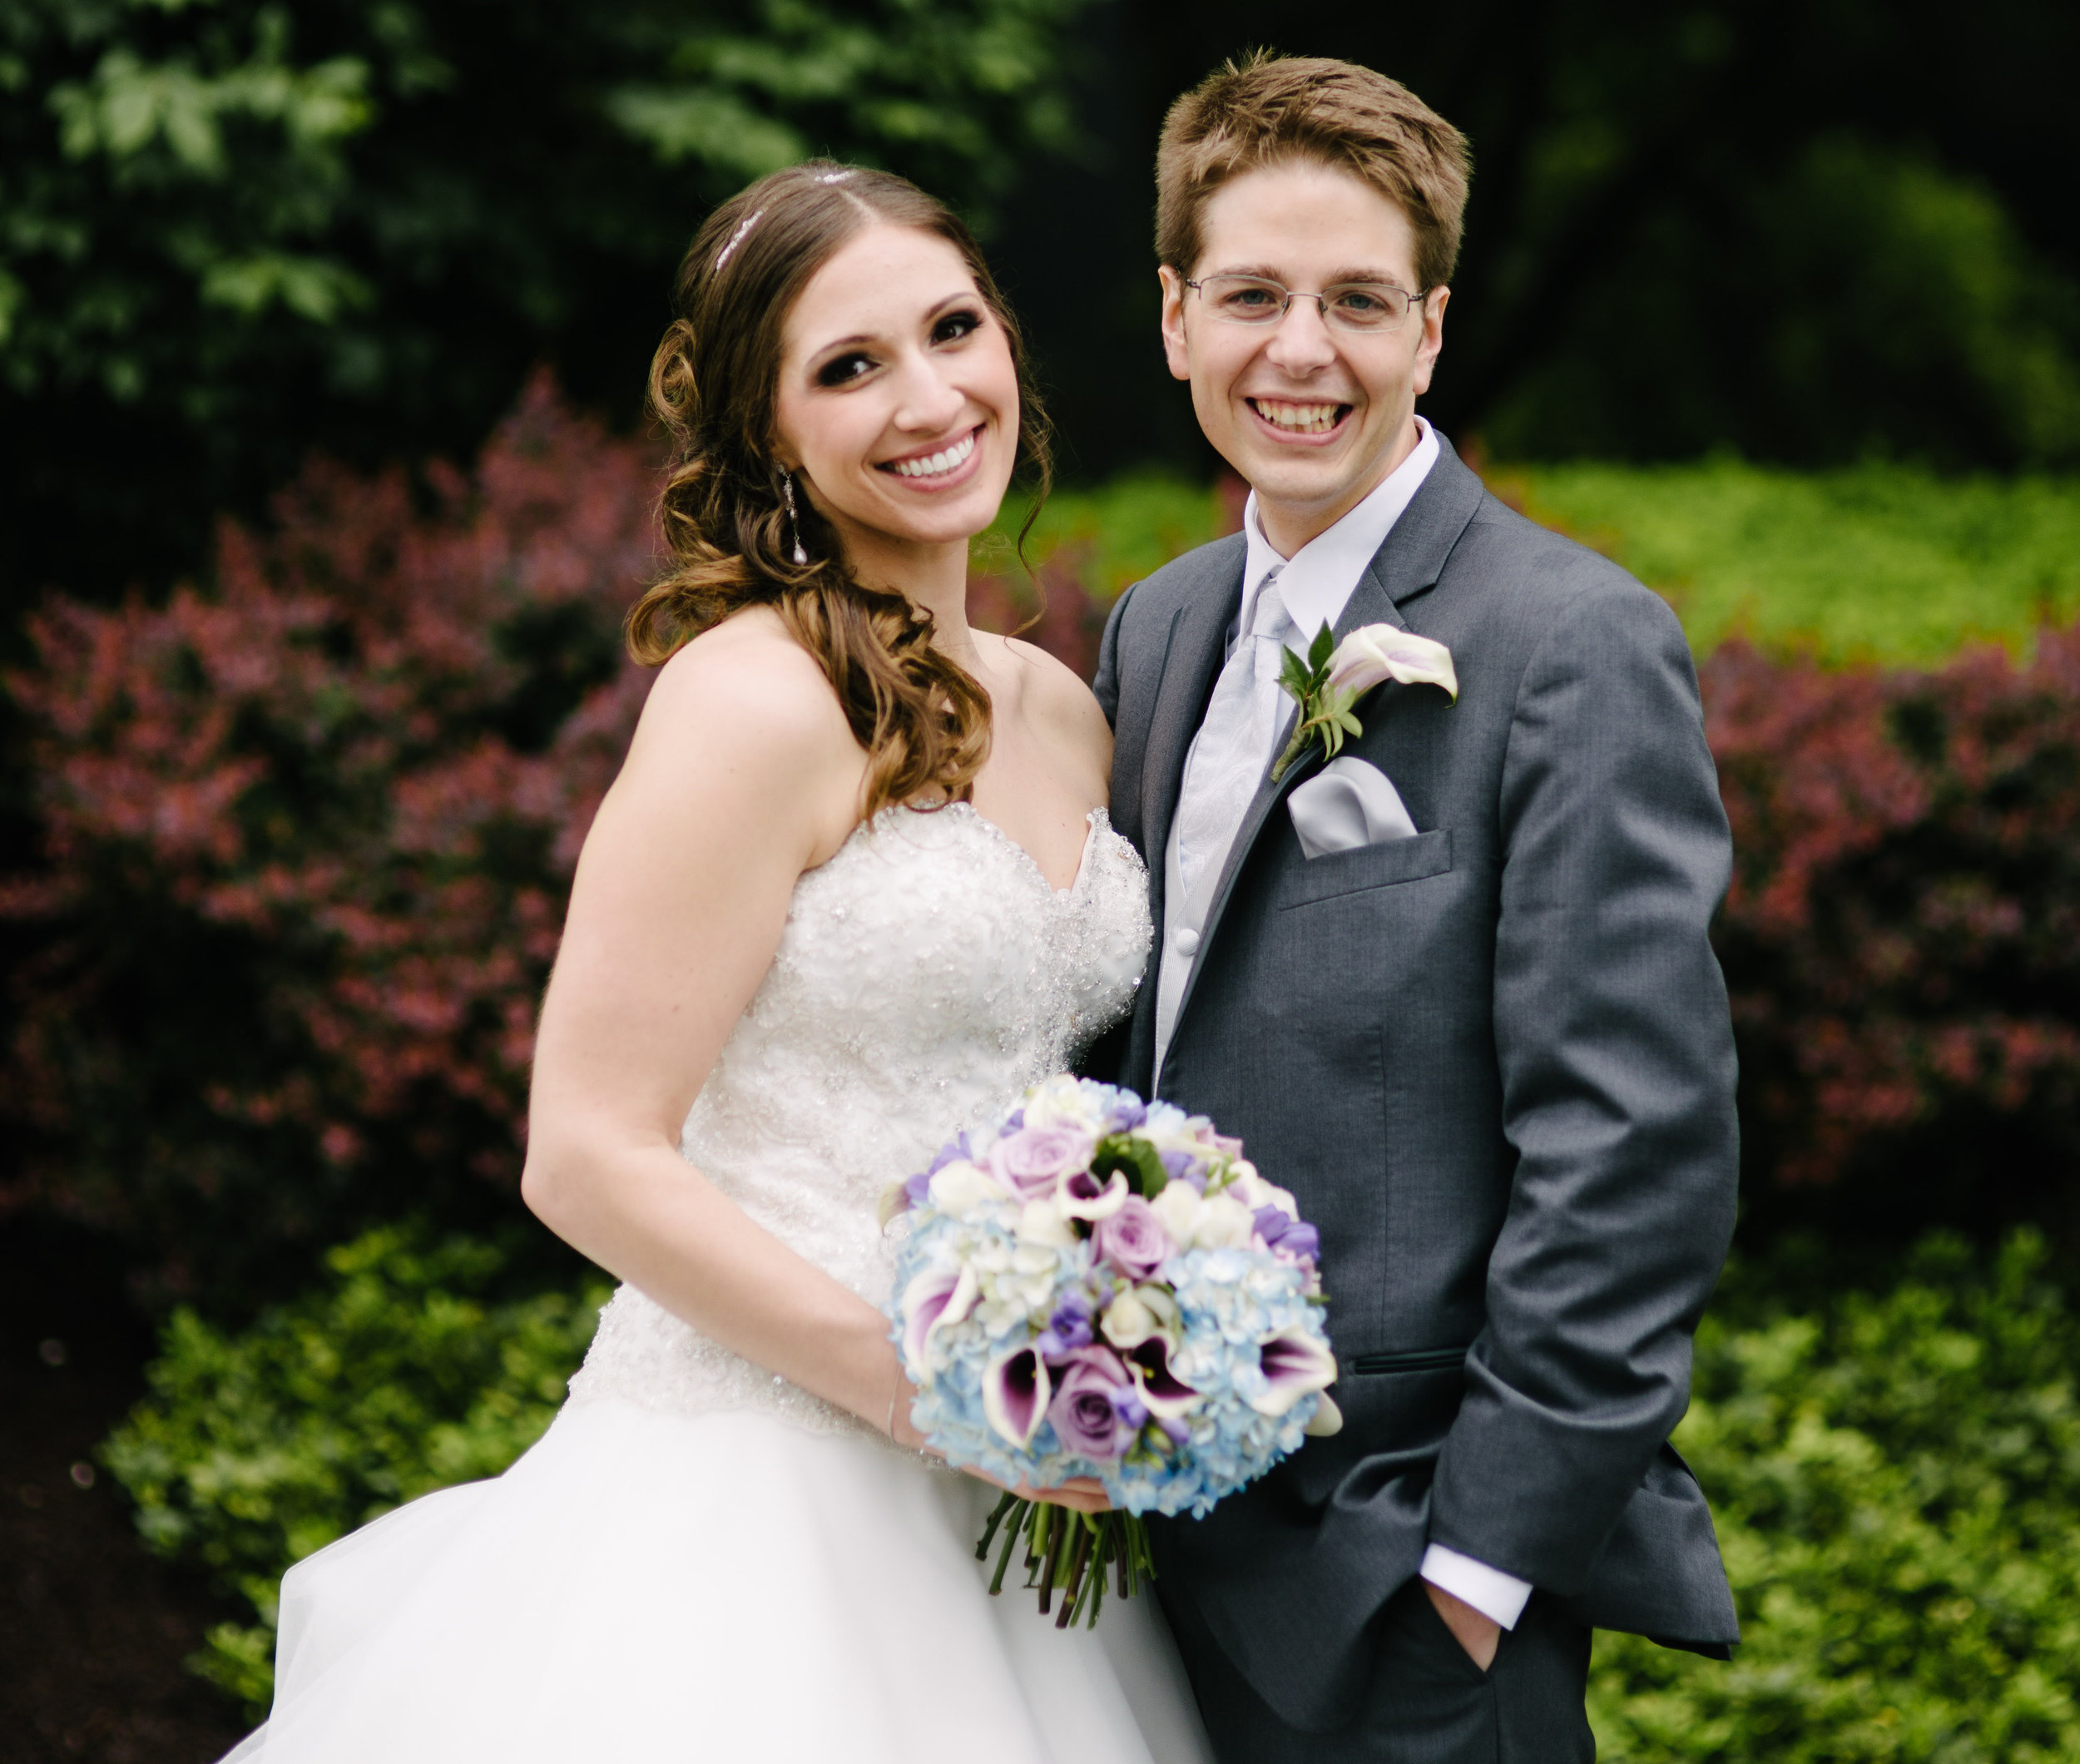 "We're Katelyn & Alex - A husband-and-wife planning duo who live to celebrate moments big and small! So much so, that we dedicate most of our free time to creating special memories for amazing ""nearly newlyweds"" all over Washington, DC, Virginia & Maryland."